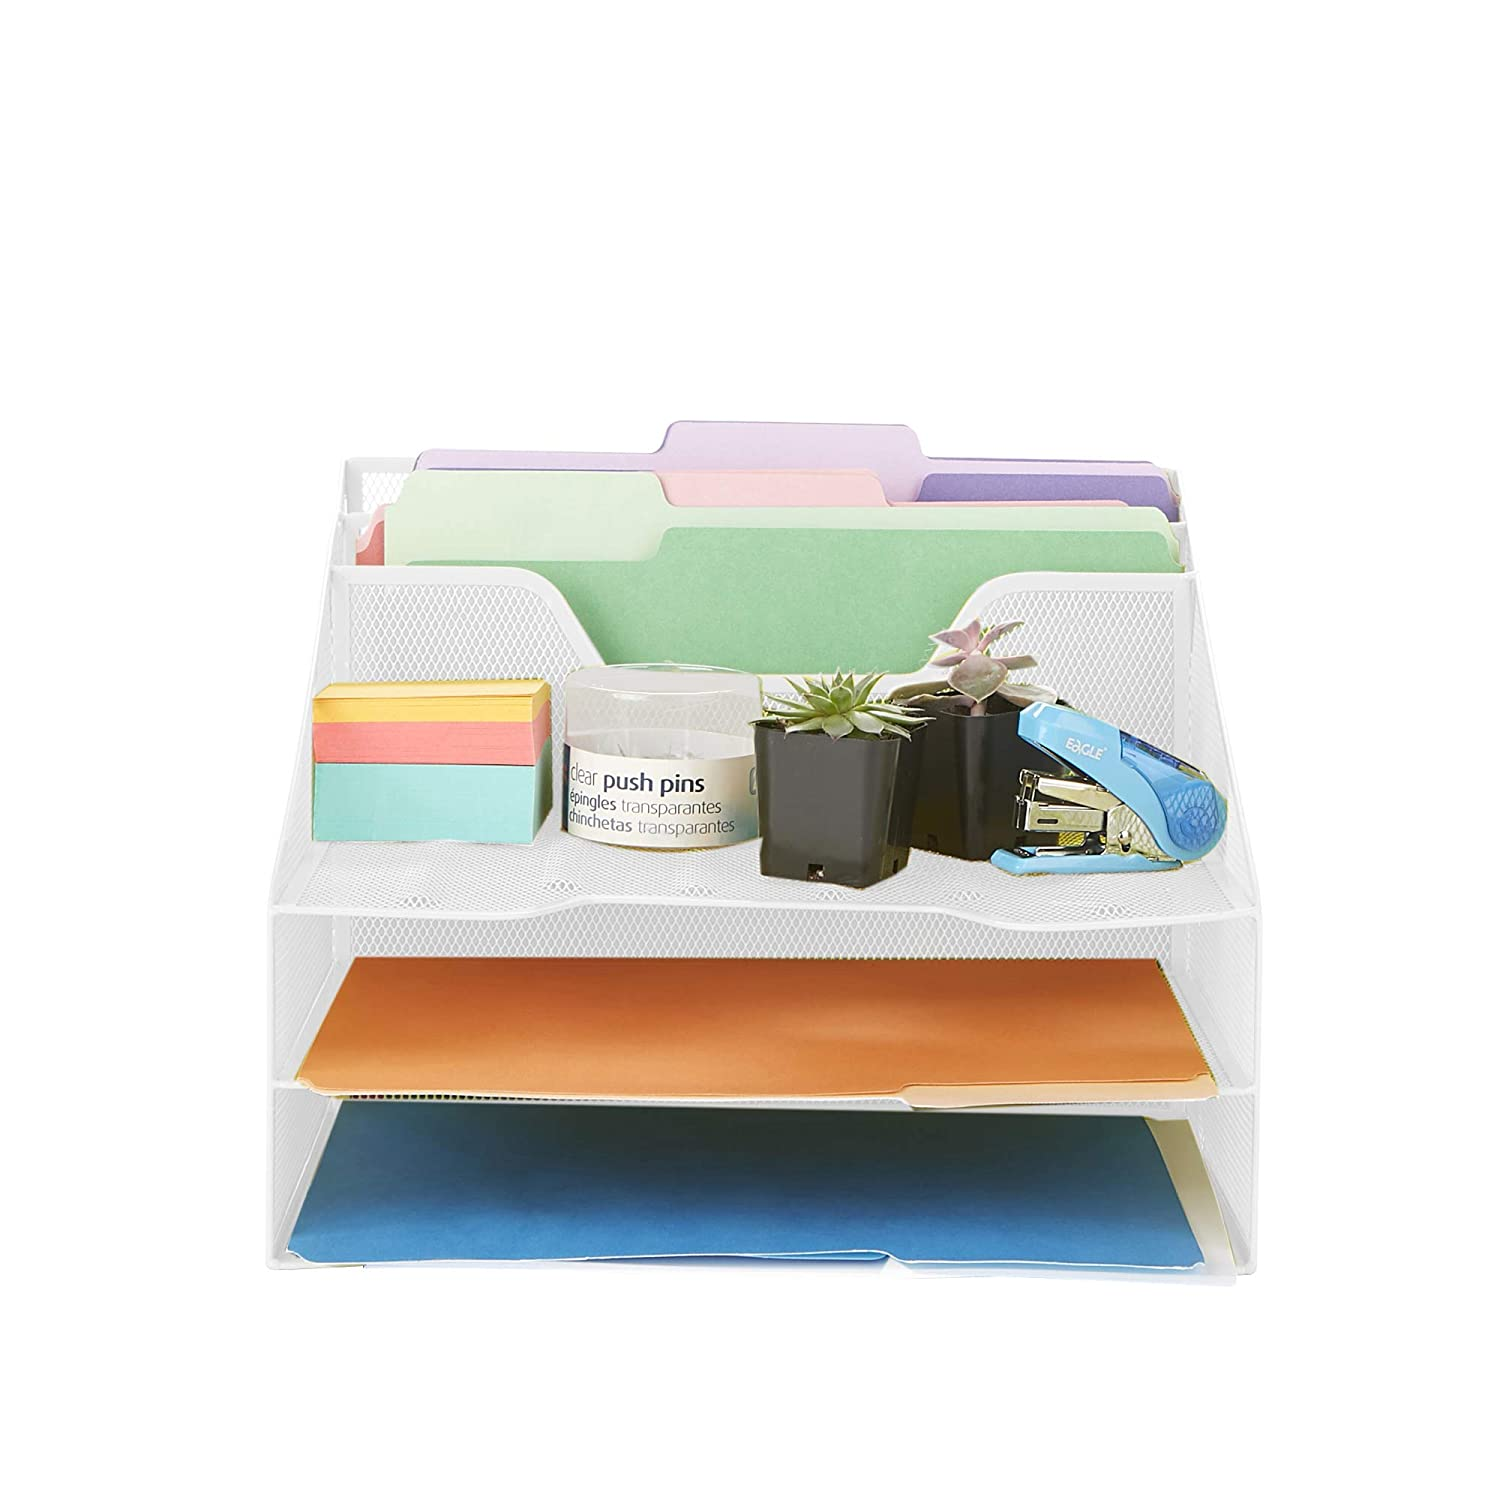 Mind Reader MESHBOX5-WHT 5 Section File, Mesh Organizer 5 Desktop Document Letter Tray for Folders, Mail, Stationary, Desk Accessories, White